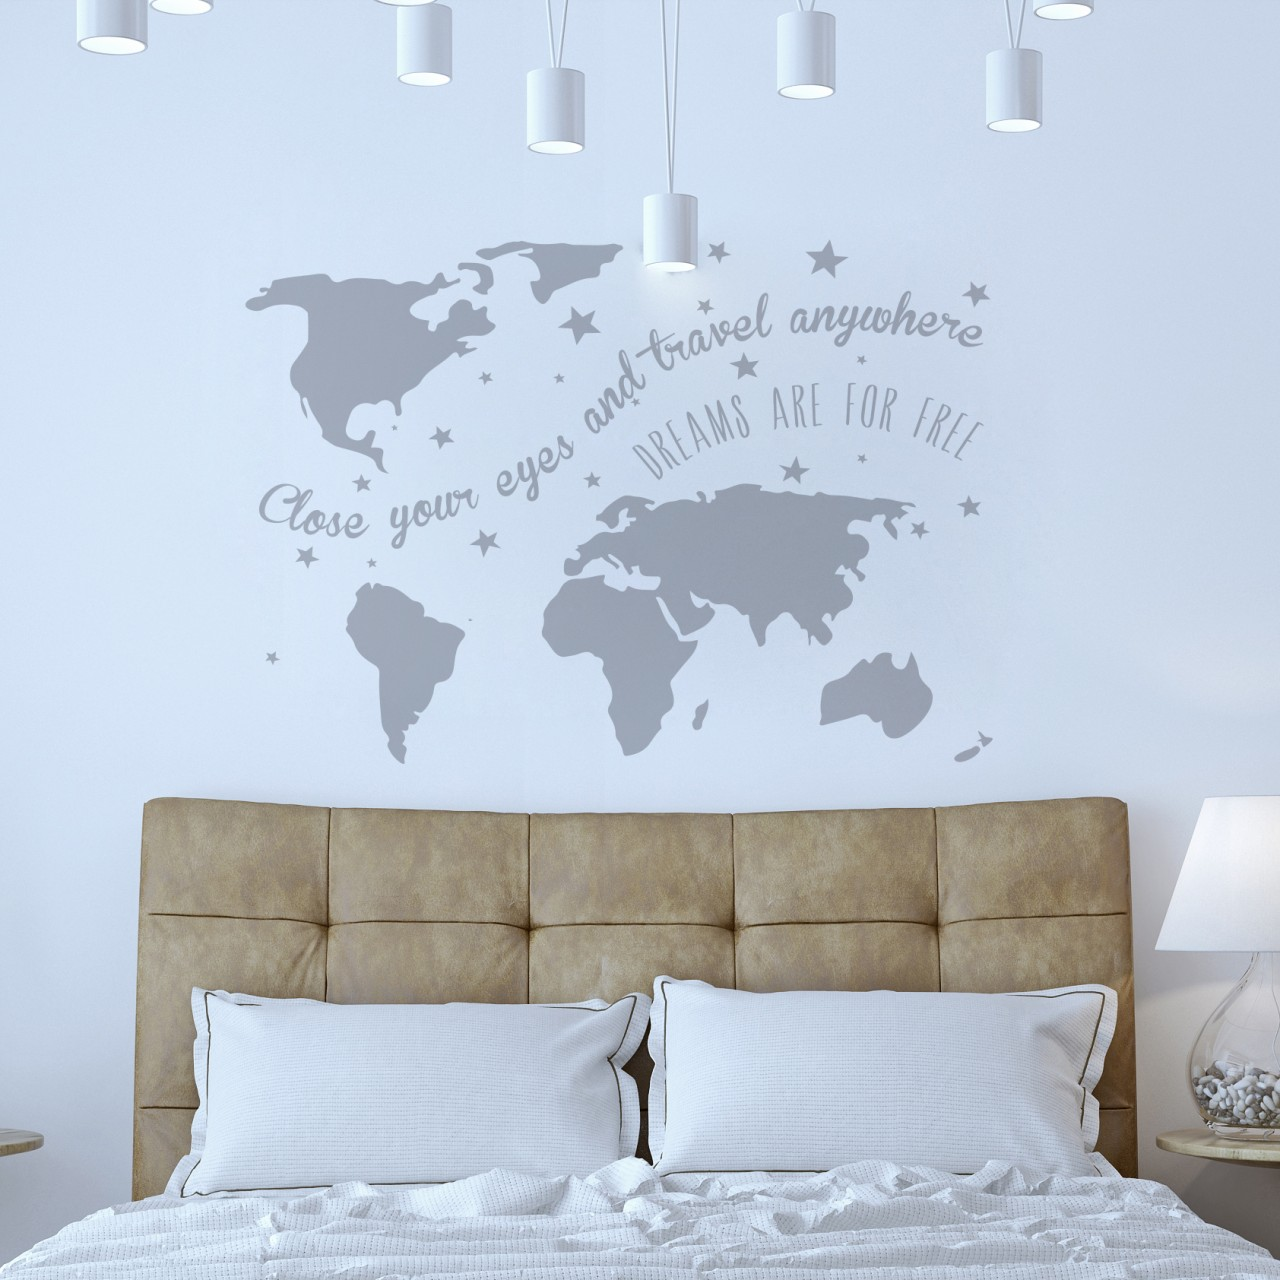 Wall sticker world map xl wall sticker world map dreams gumiabroncs Image collections